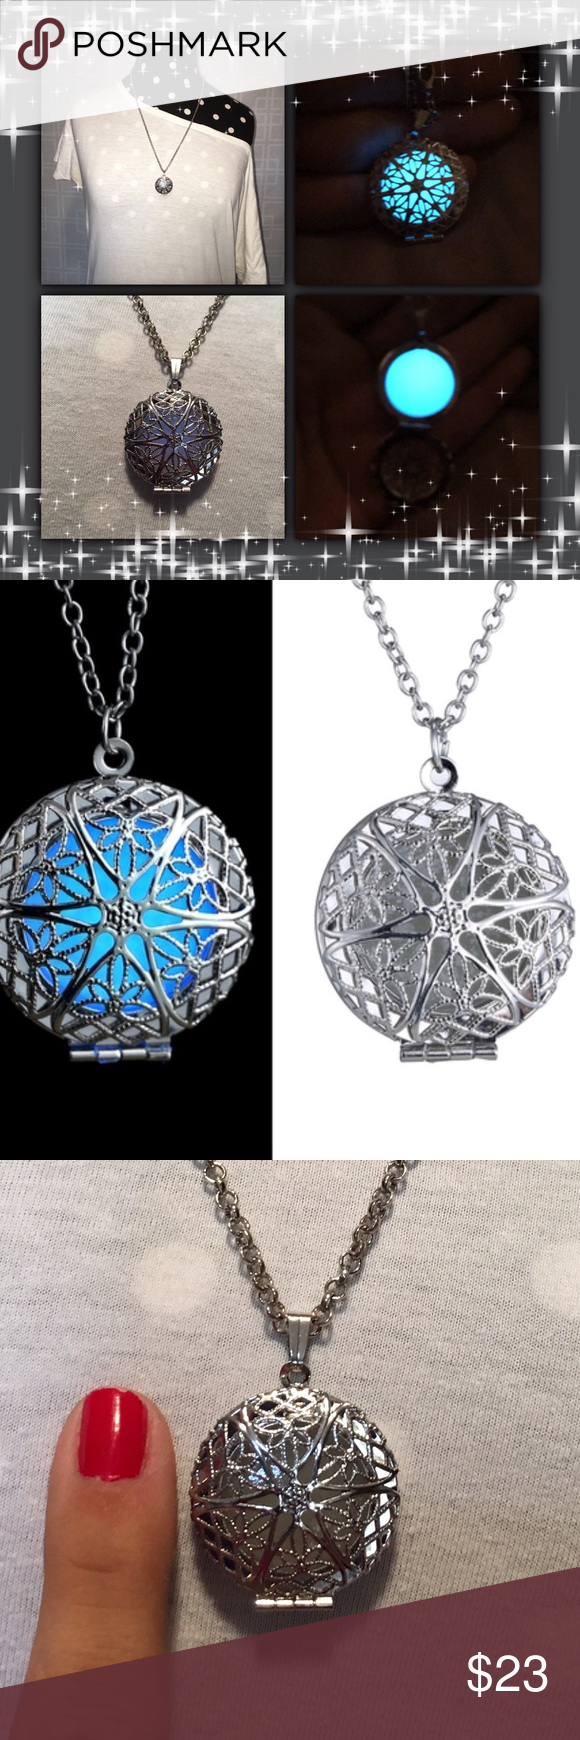 Sold in bundleglow in the dark emulate locket glow white gold